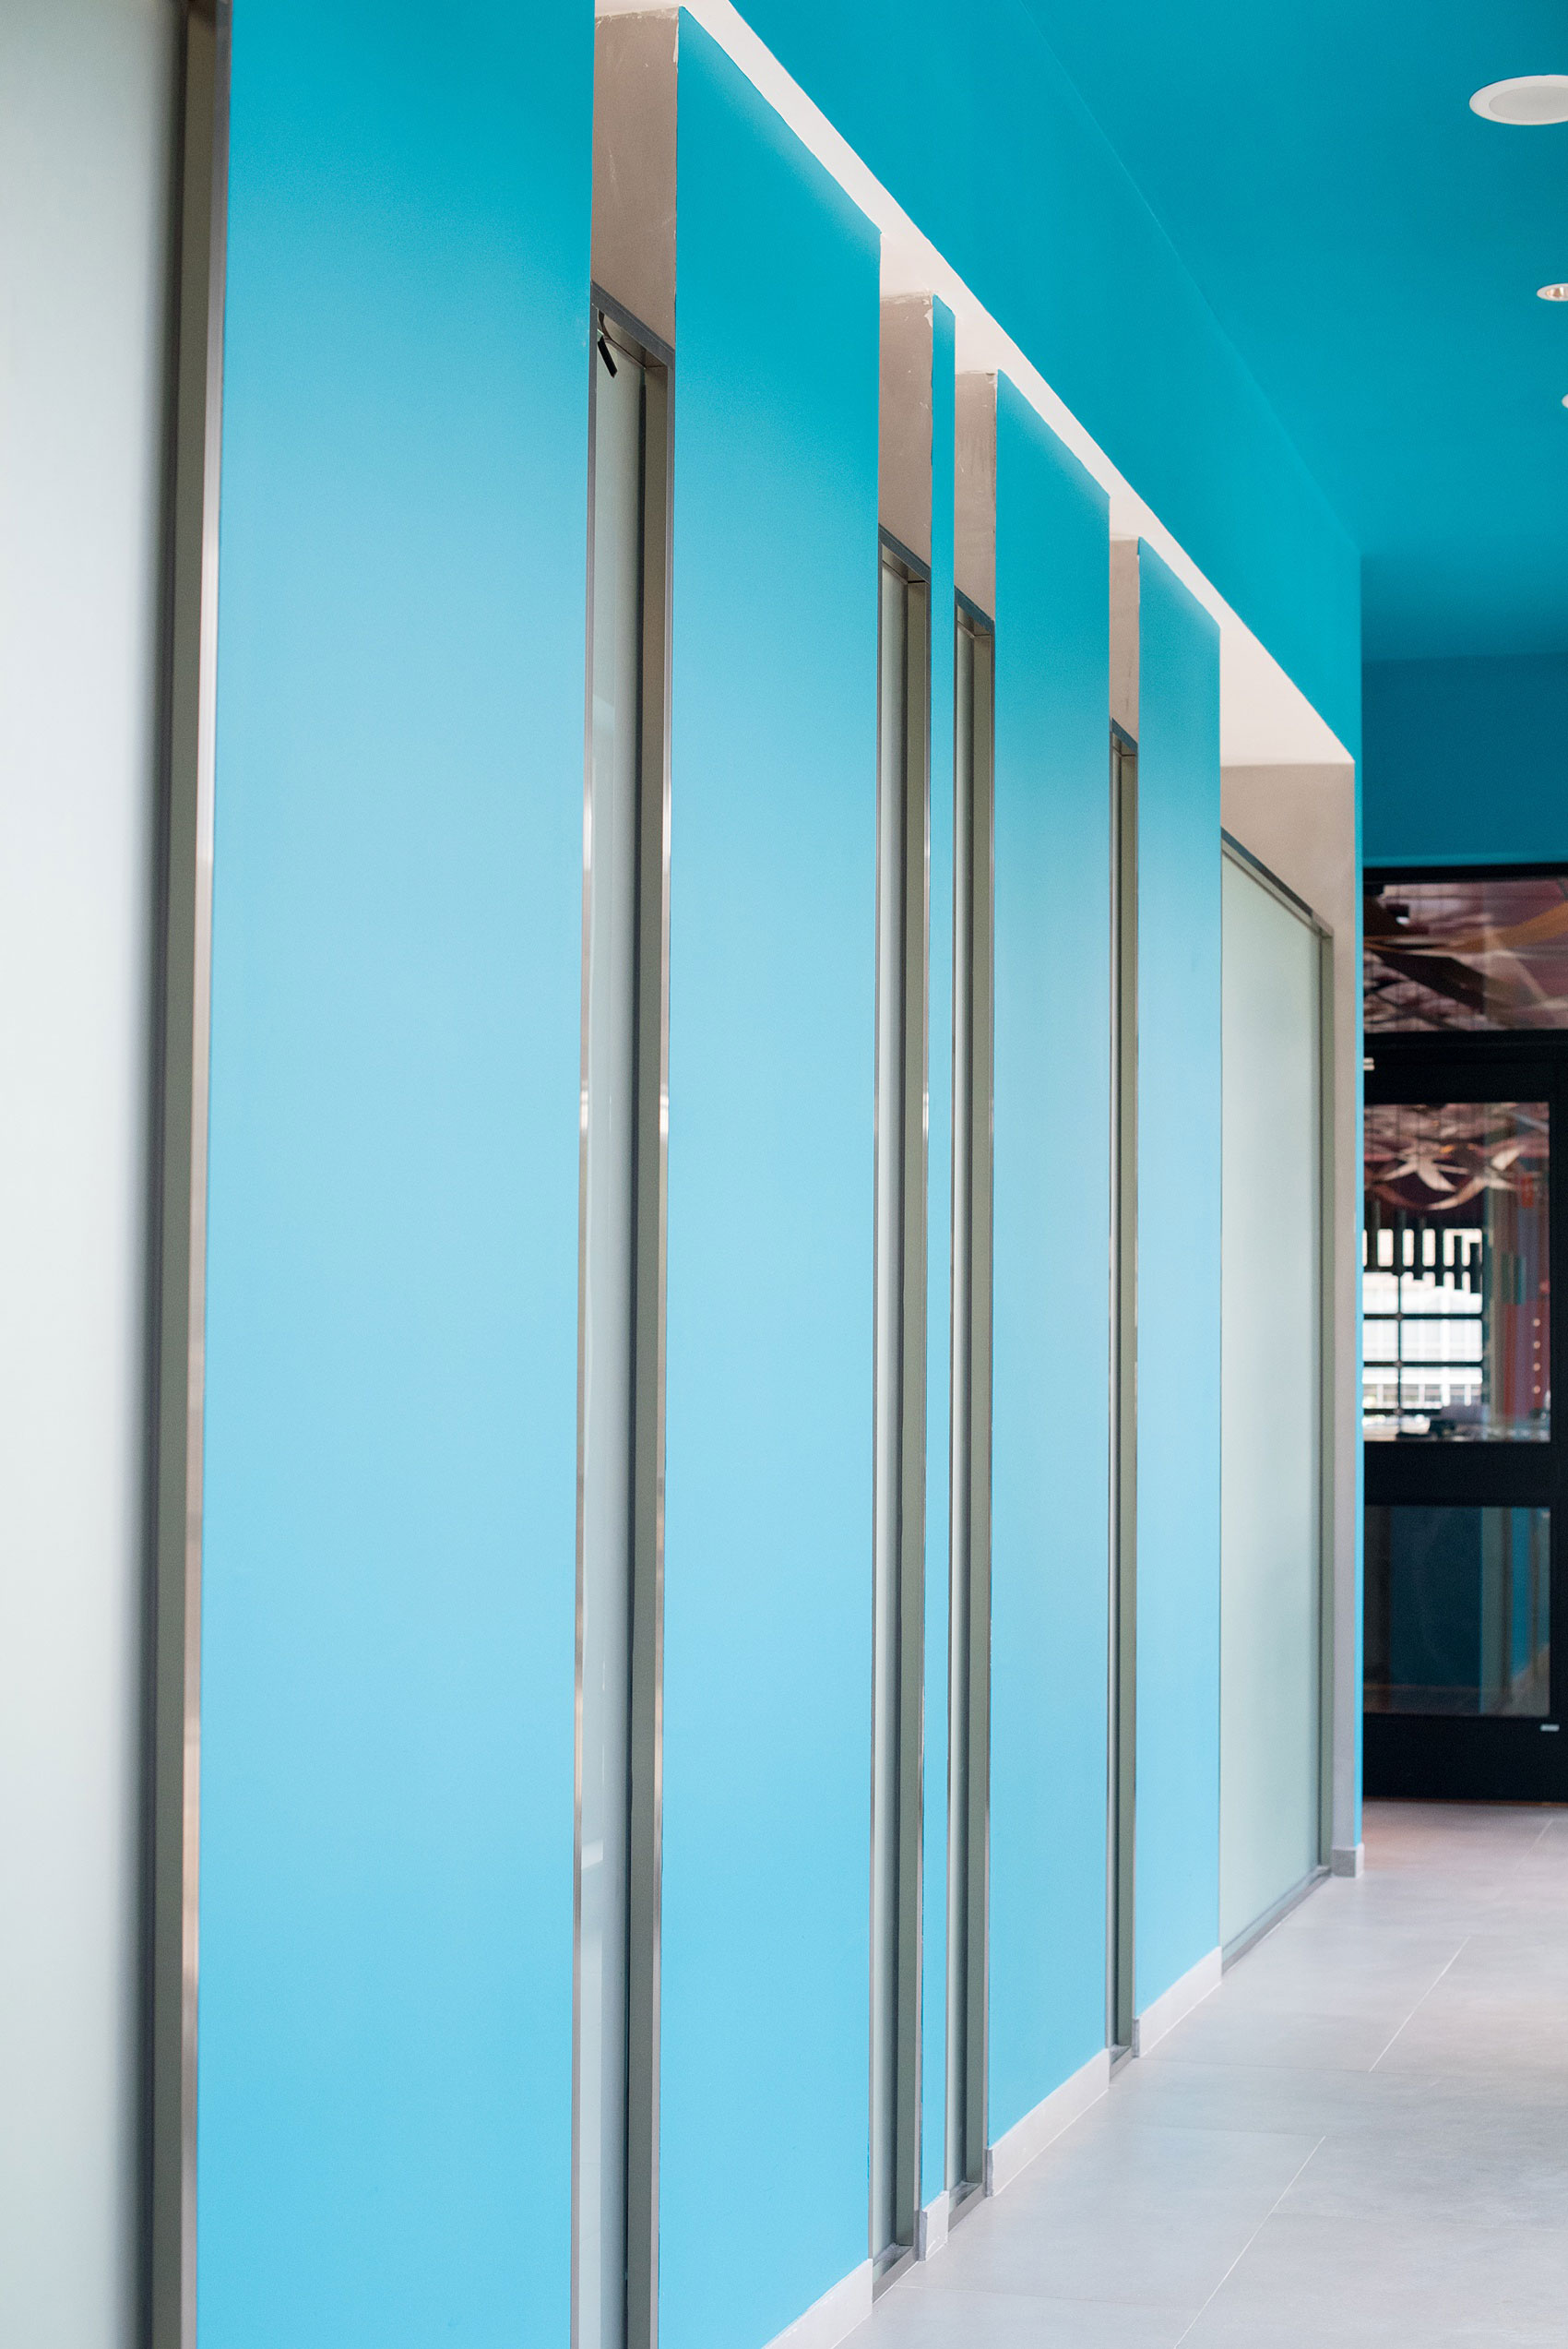 Photos of Vidrio restaurant in Raleigh, NC by Mikkel Paige Photography. Wedding venue in North Carolina with mediterranean and Spanish inspired art and interior design. Picture of a teal interior wall.